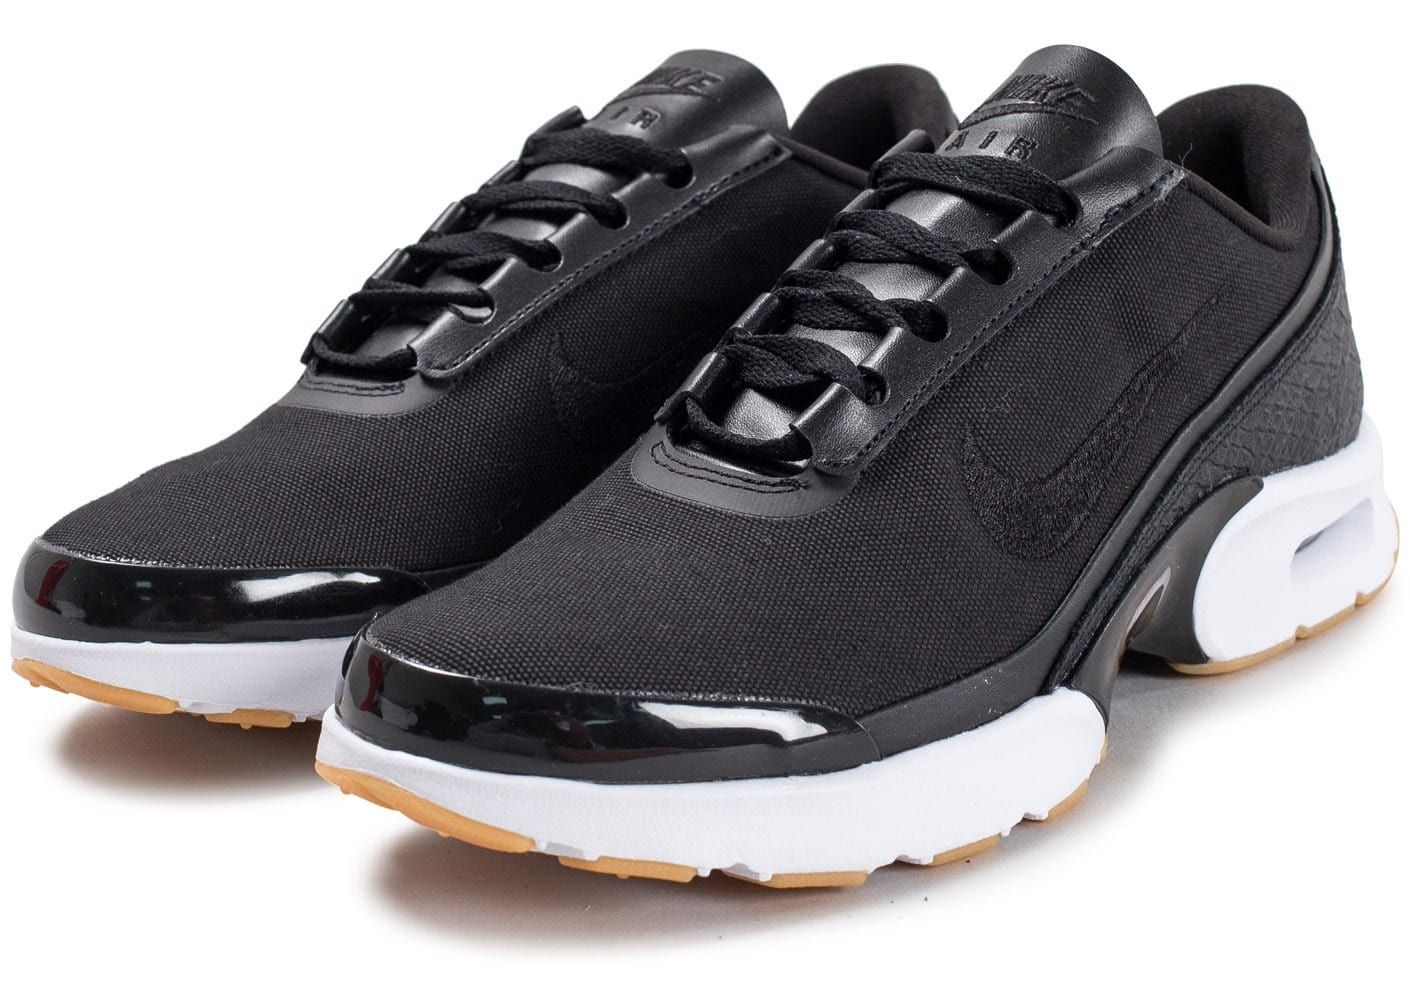 nike air max jewell se noir gum chaussures black friday chausport. Black Bedroom Furniture Sets. Home Design Ideas